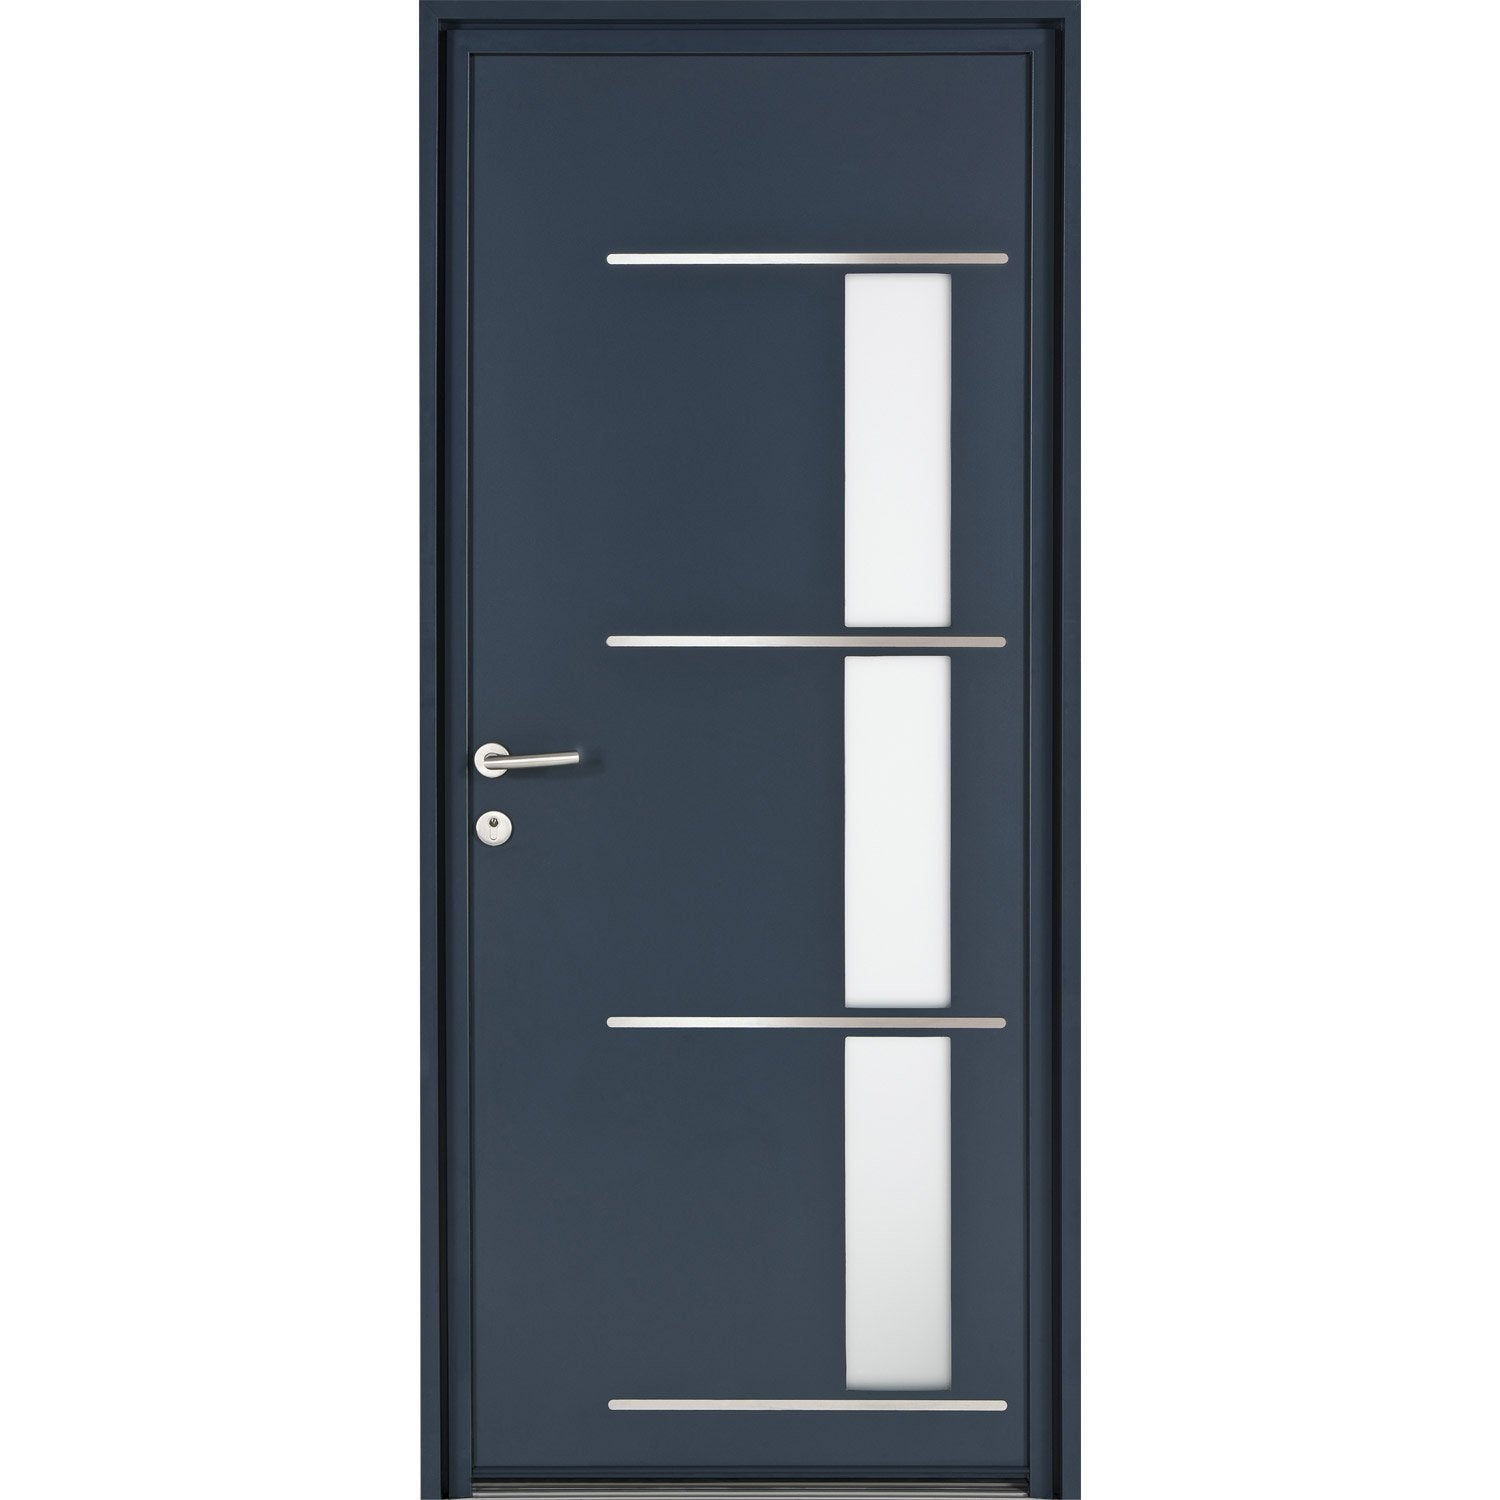 porte d 39 entr e sur mesure en aluminium matara excellence leroy merlin. Black Bedroom Furniture Sets. Home Design Ideas